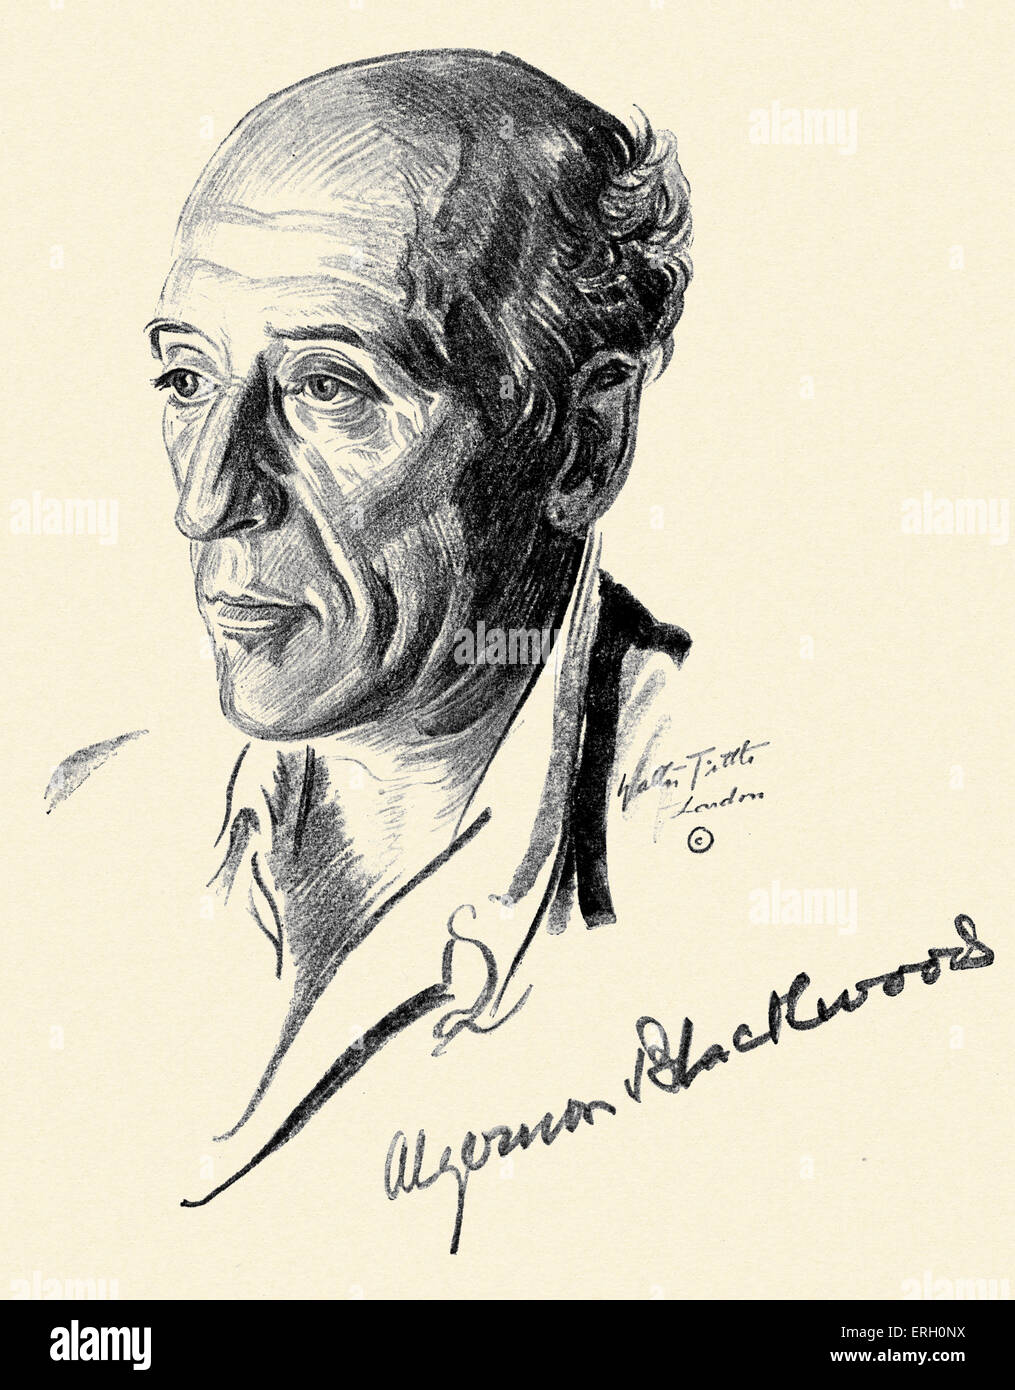 Algernon Blackwood, (1869-1951) English writer of fiction dealing with the supernatural. Portrait by Walter Tittle. - Stock Image